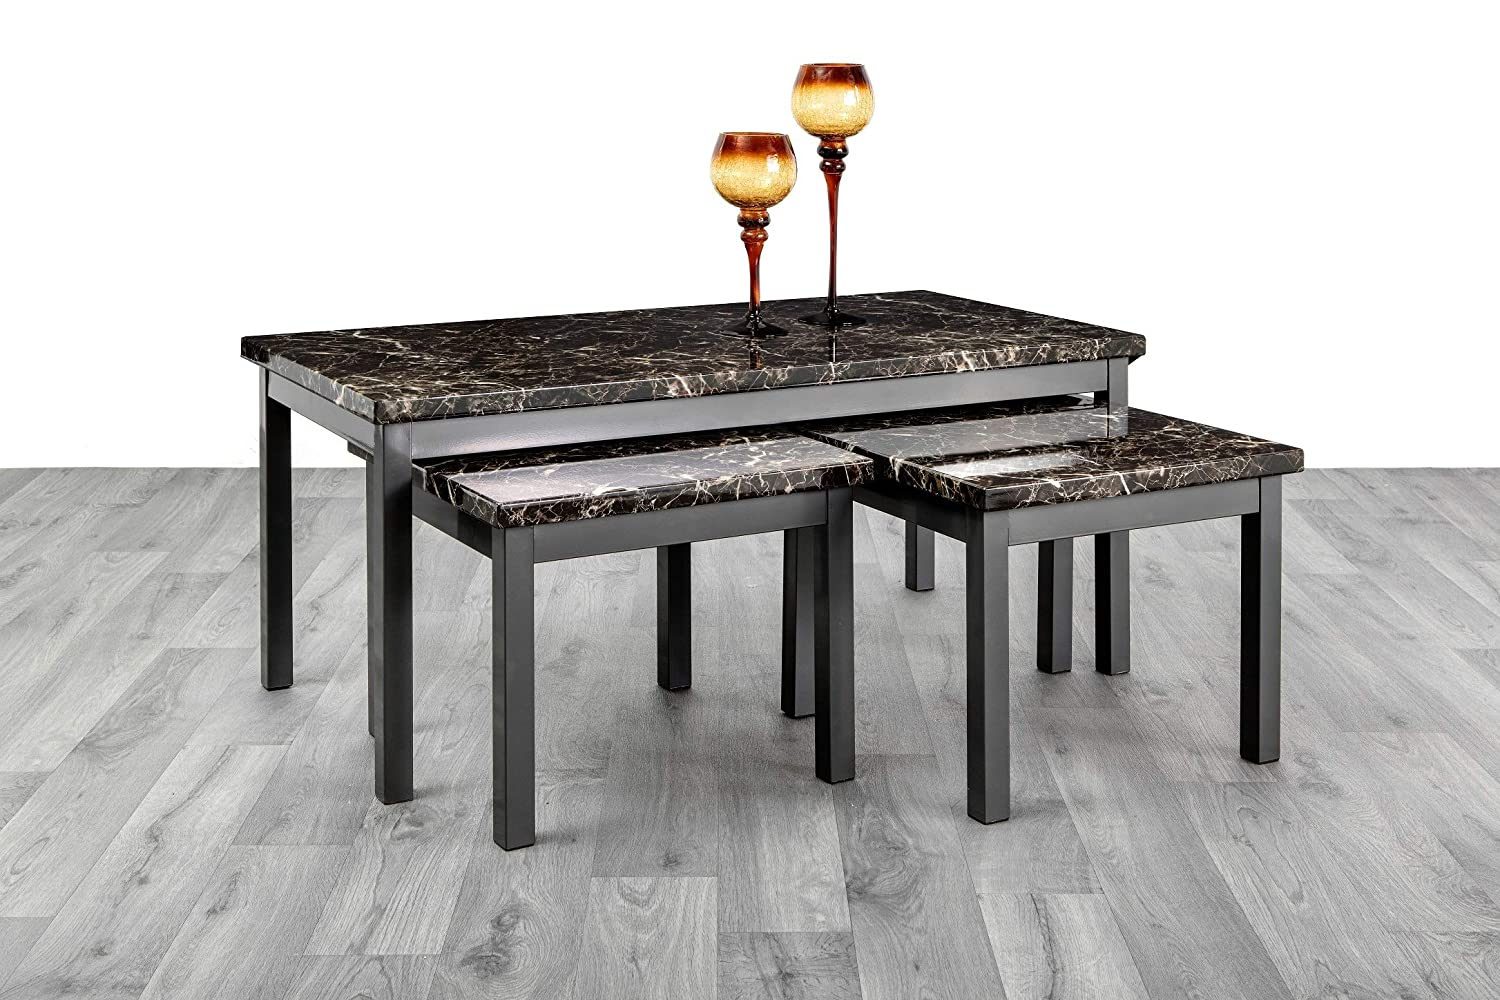 Coffee Table With 2 Matching Side Tables Marble Effect Mdf Top With Gloss Black Metal Frame Black